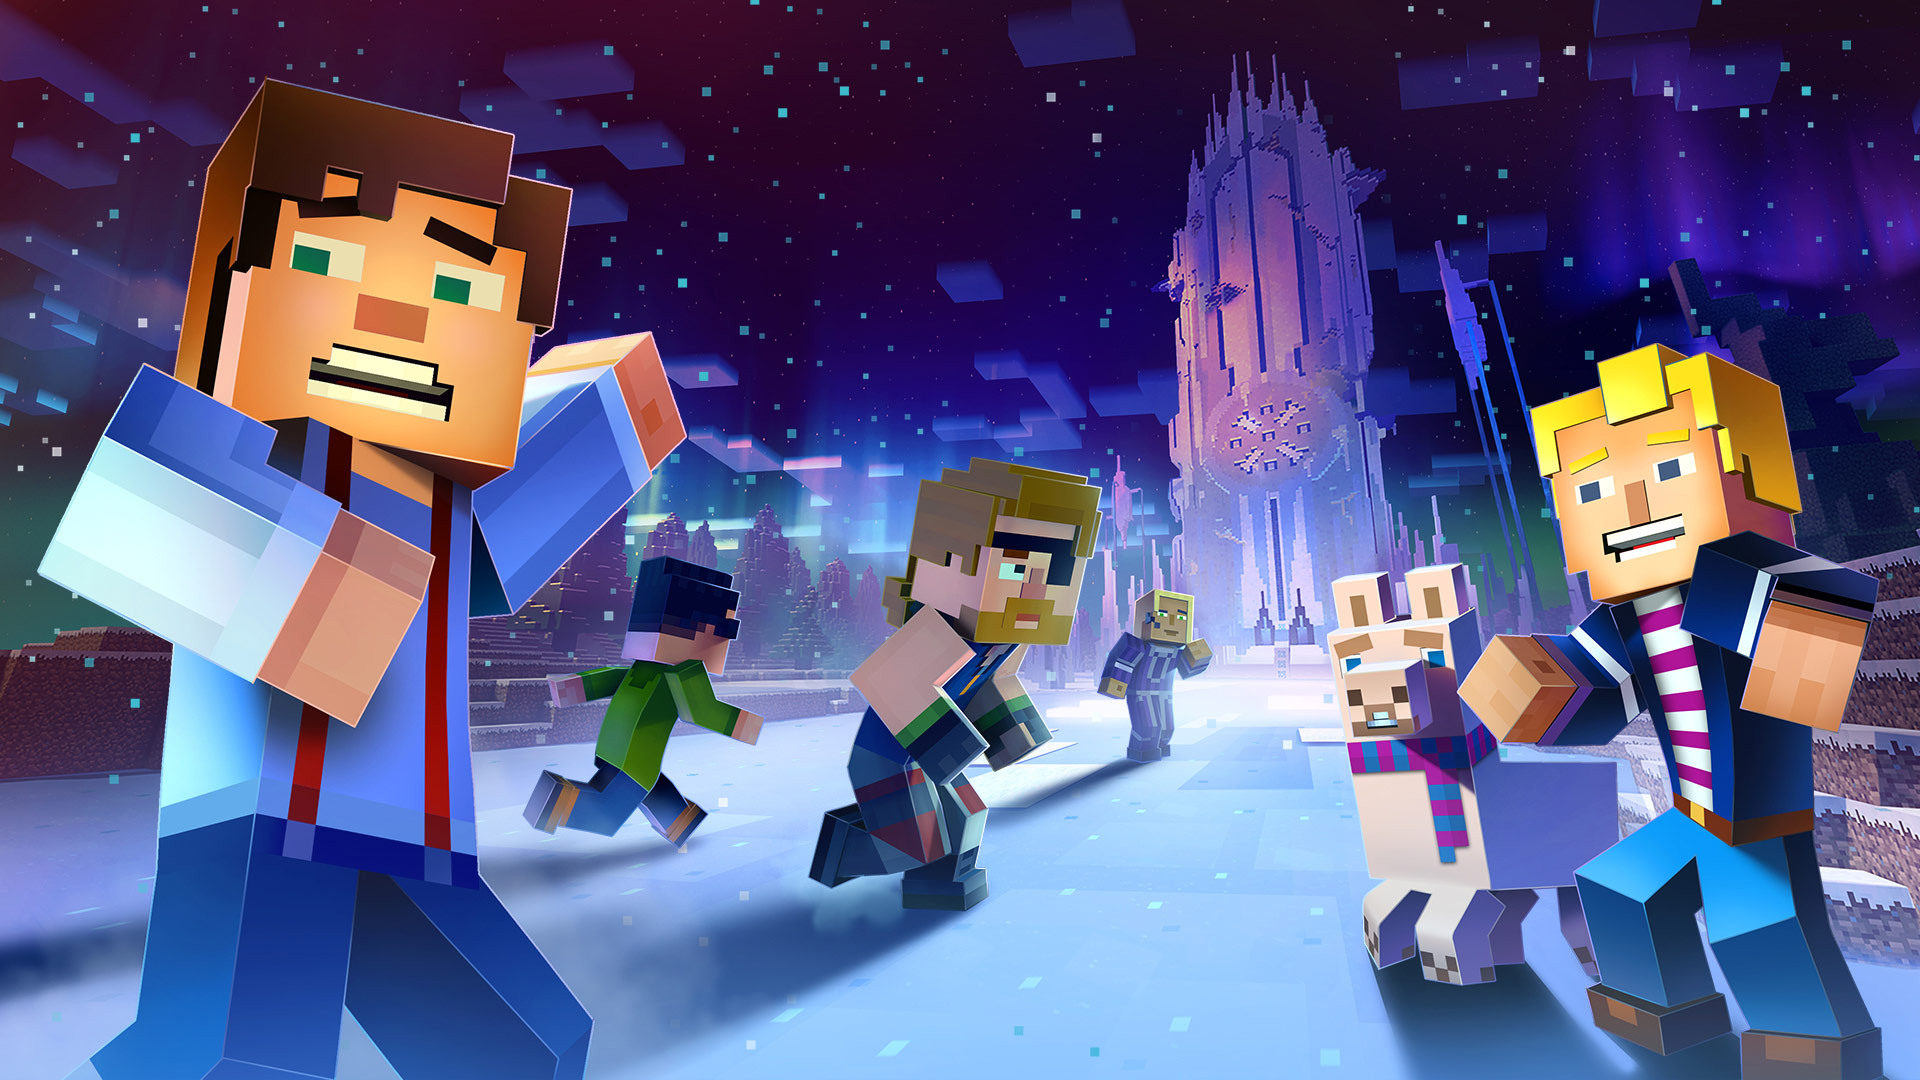 Minecraft story mode season 2 episode 2 giant consequences review gamerheadquarters - Minecraft story mode wallpaper ...